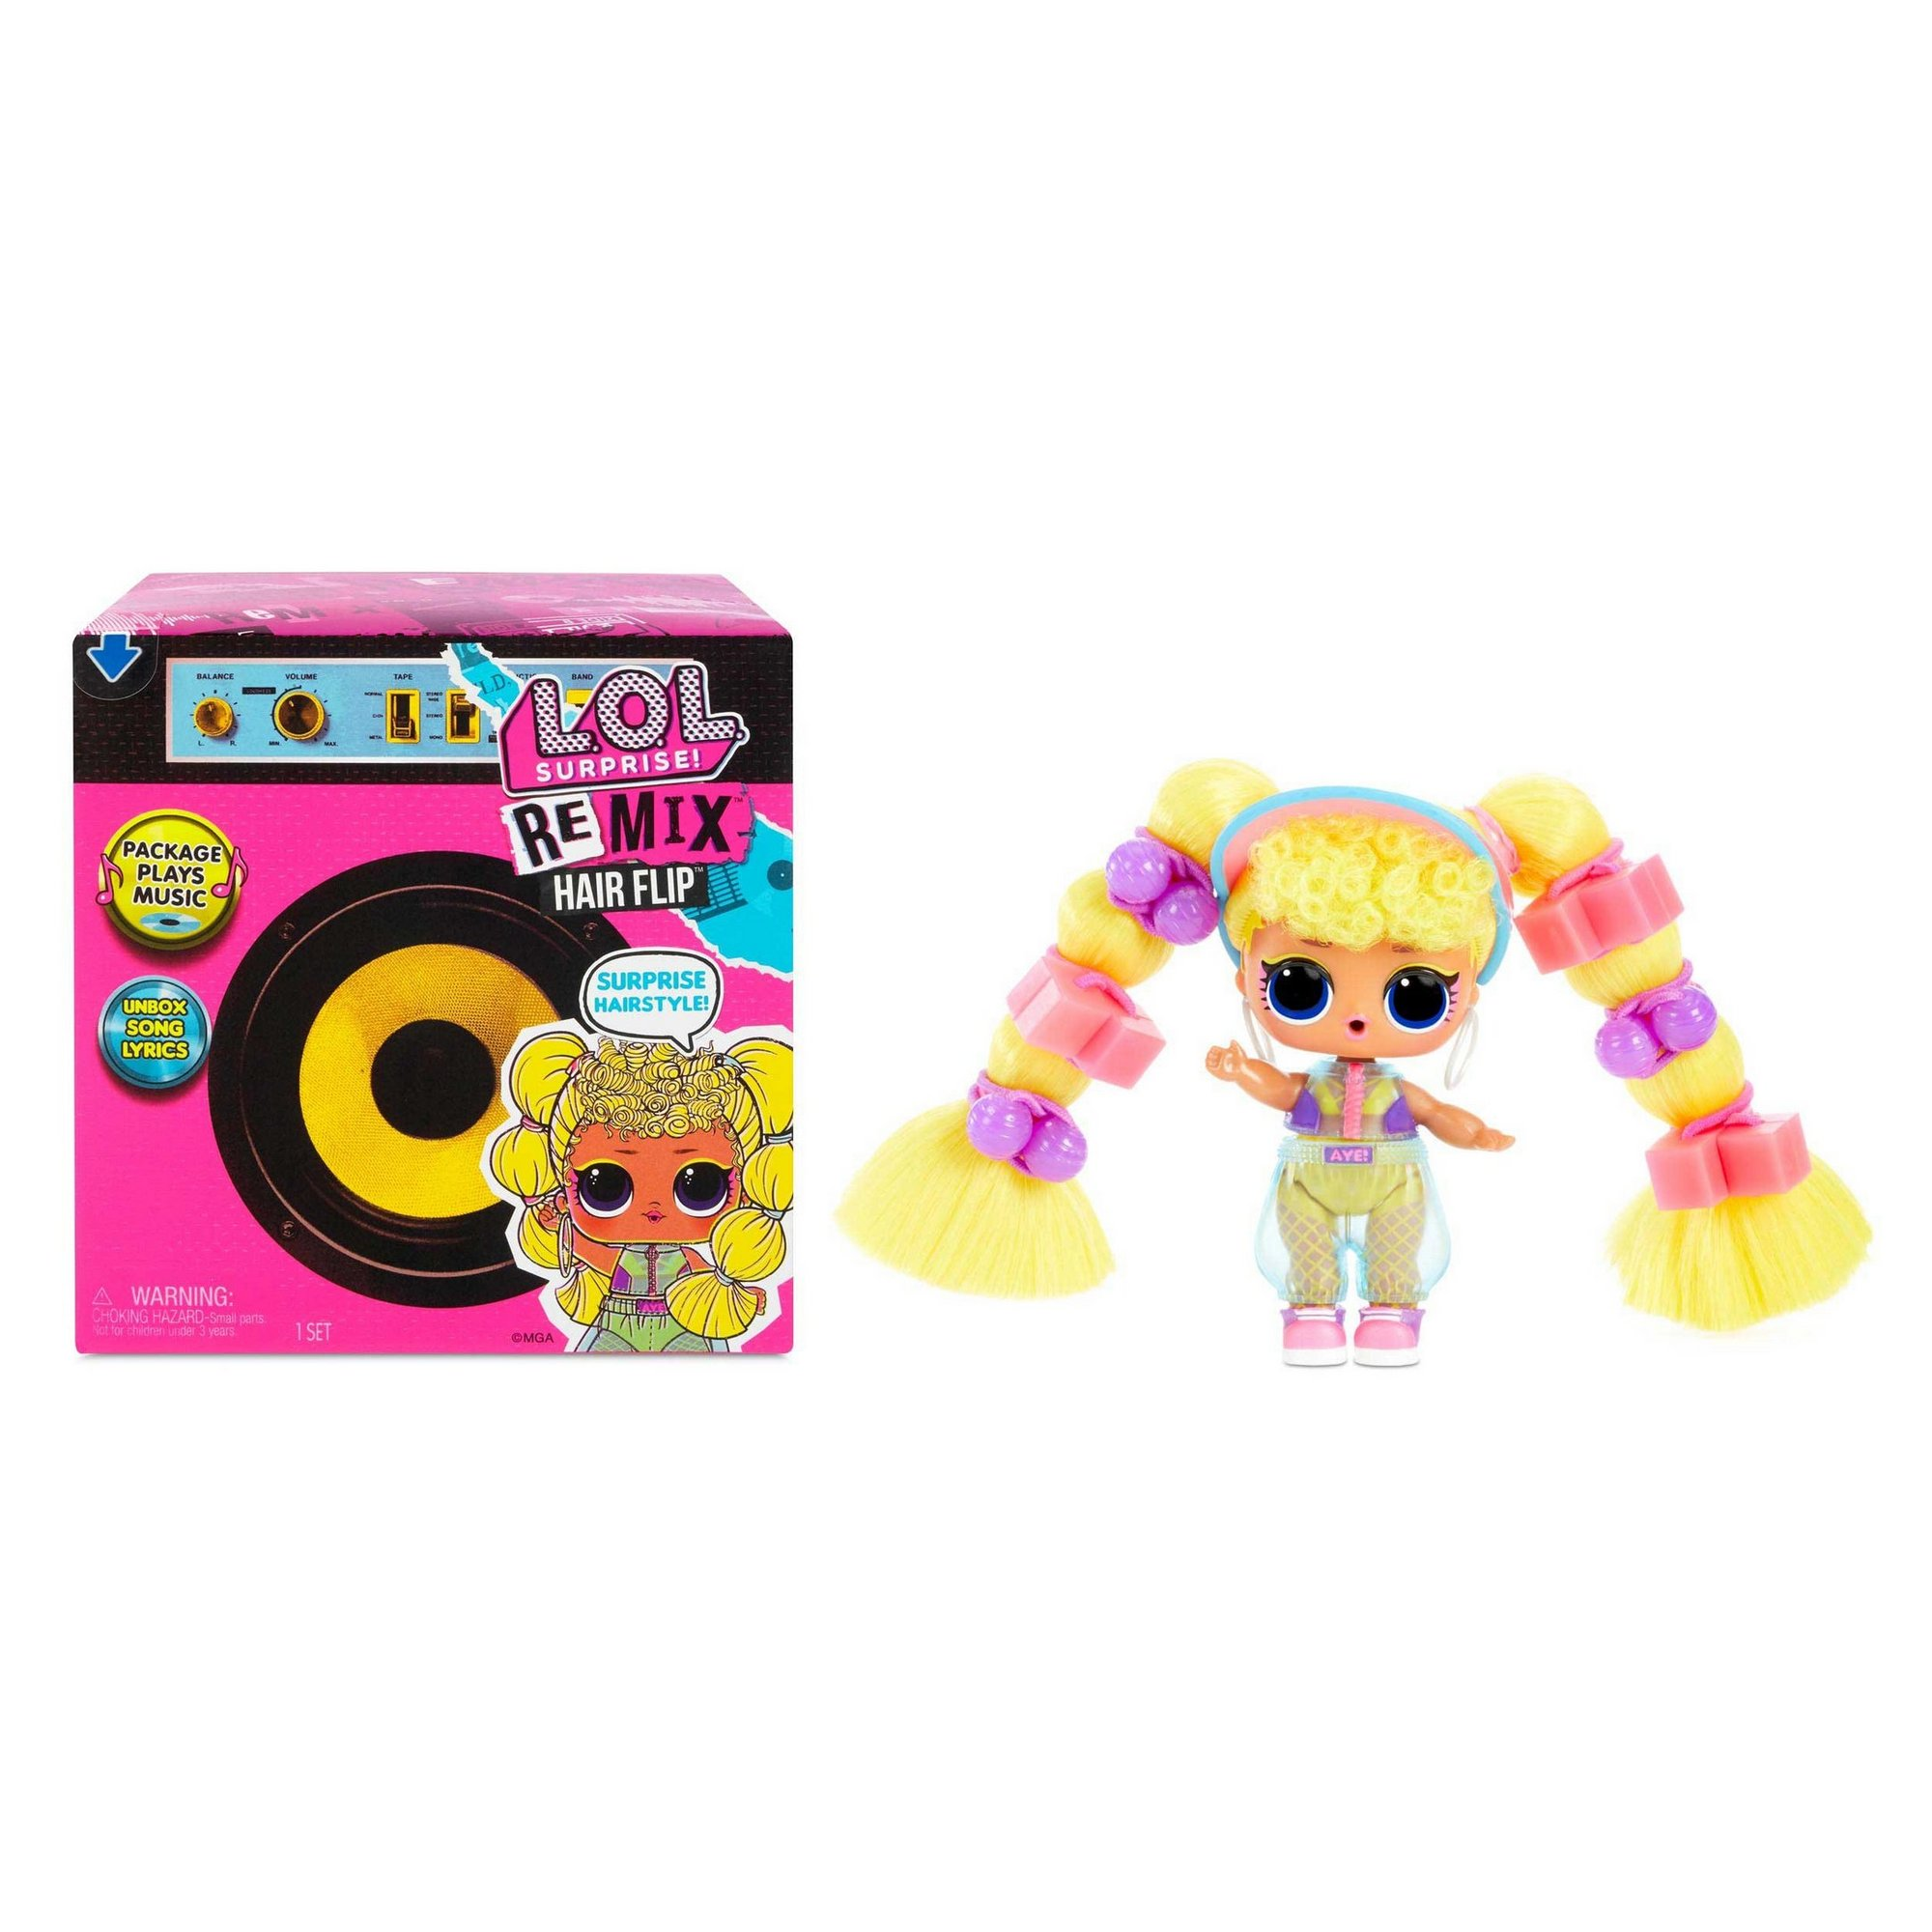 Image of L.O.L. SurpriseAssorted Remix Hairflip Tots